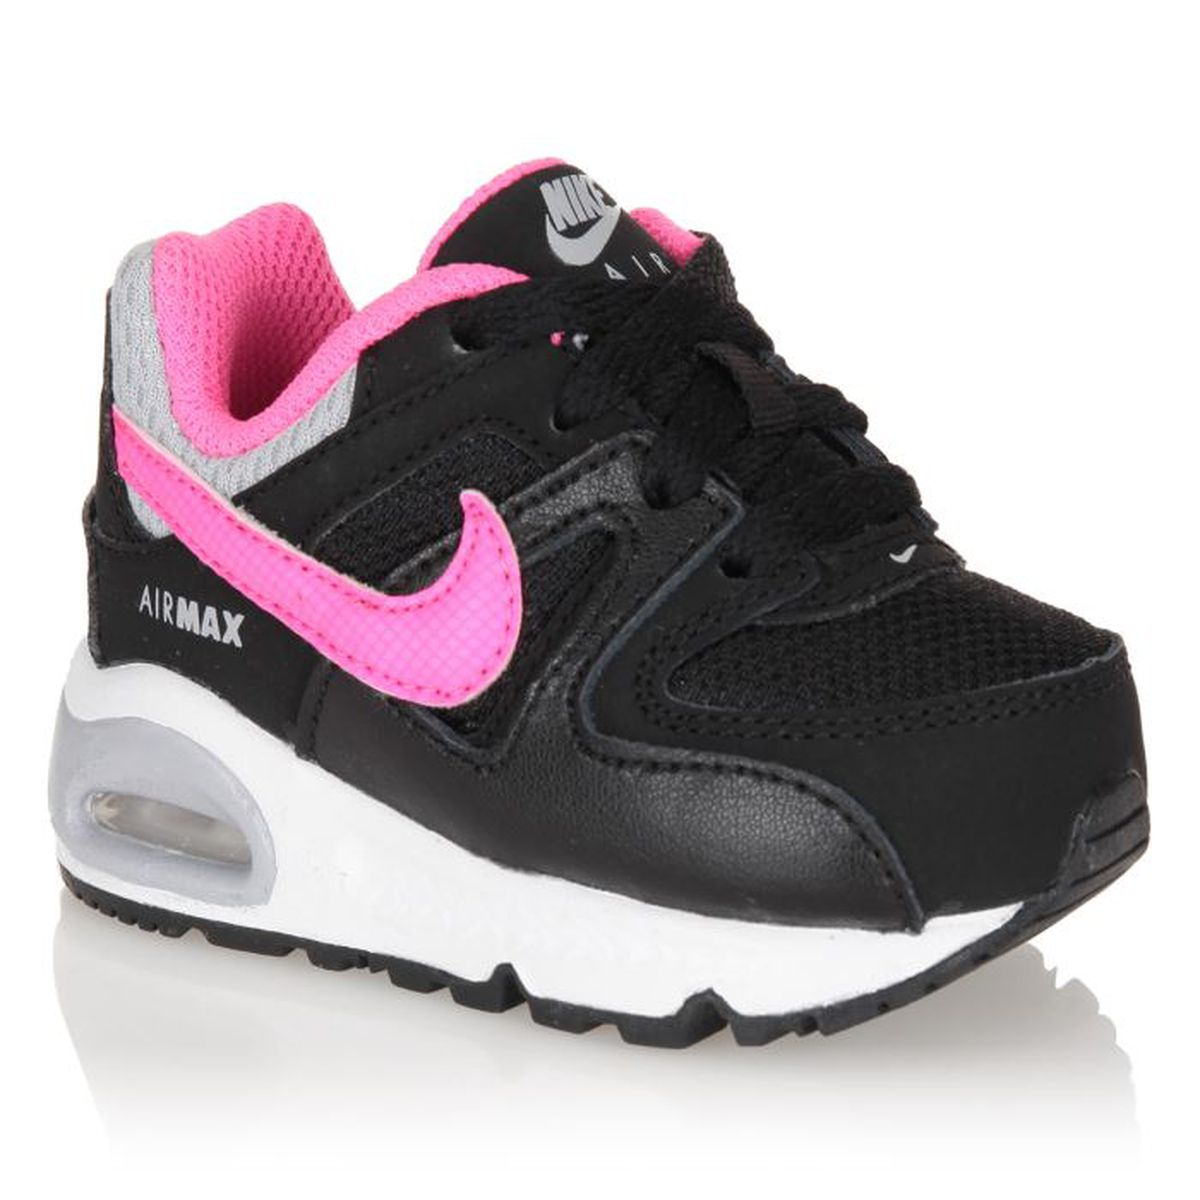 nike air max enfant fille pas cher salford van hire. Black Bedroom Furniture Sets. Home Design Ideas